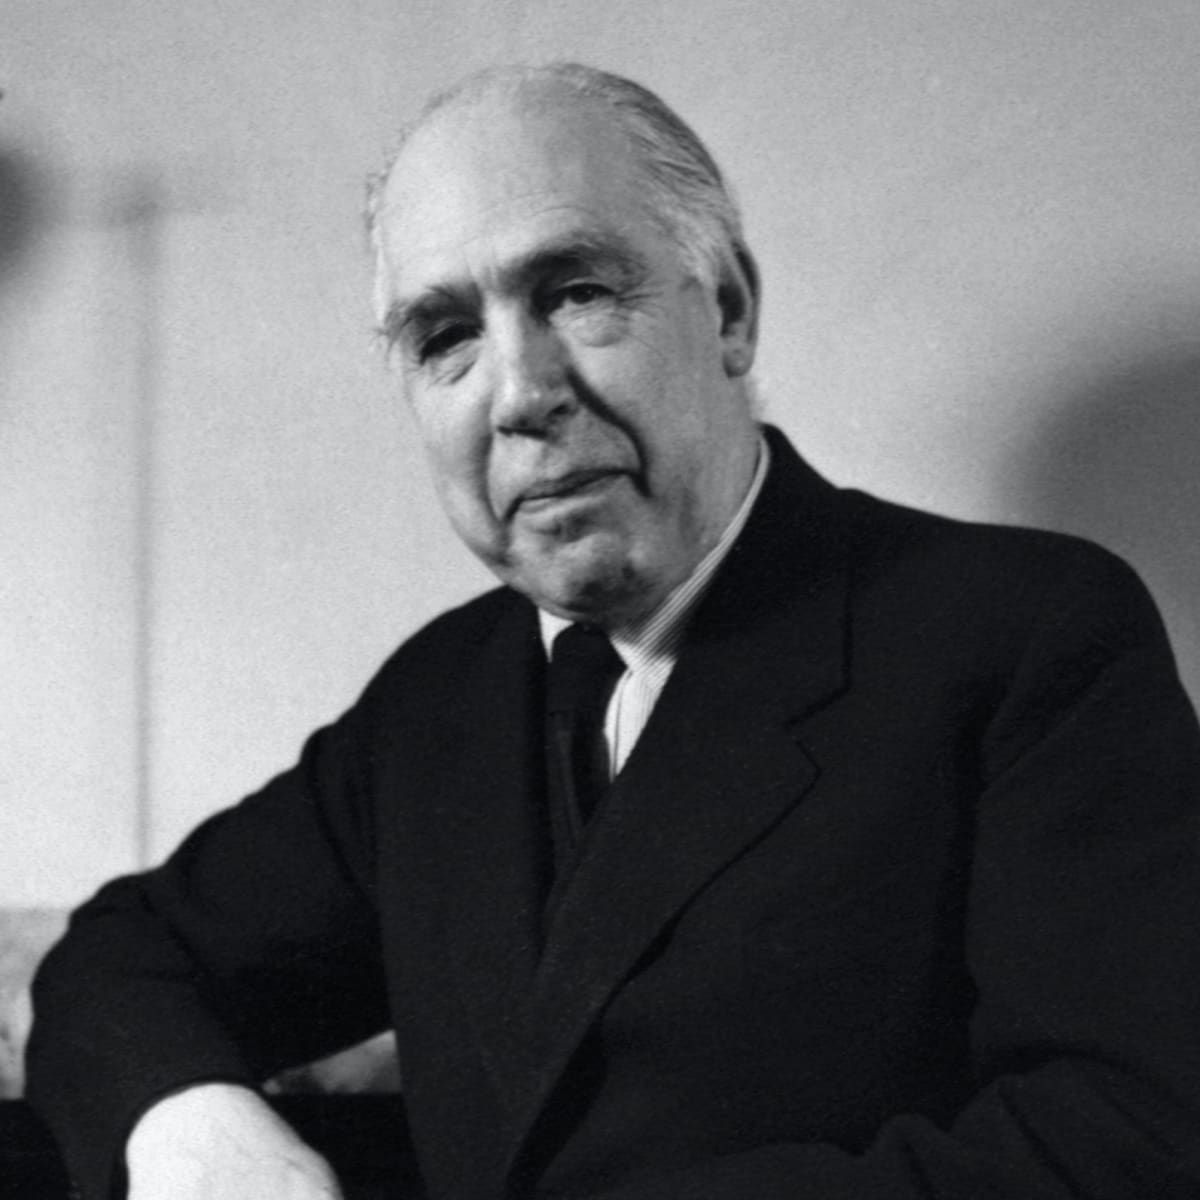 Niels Bohr - Atomic Theory, Model & Quotes - Biography